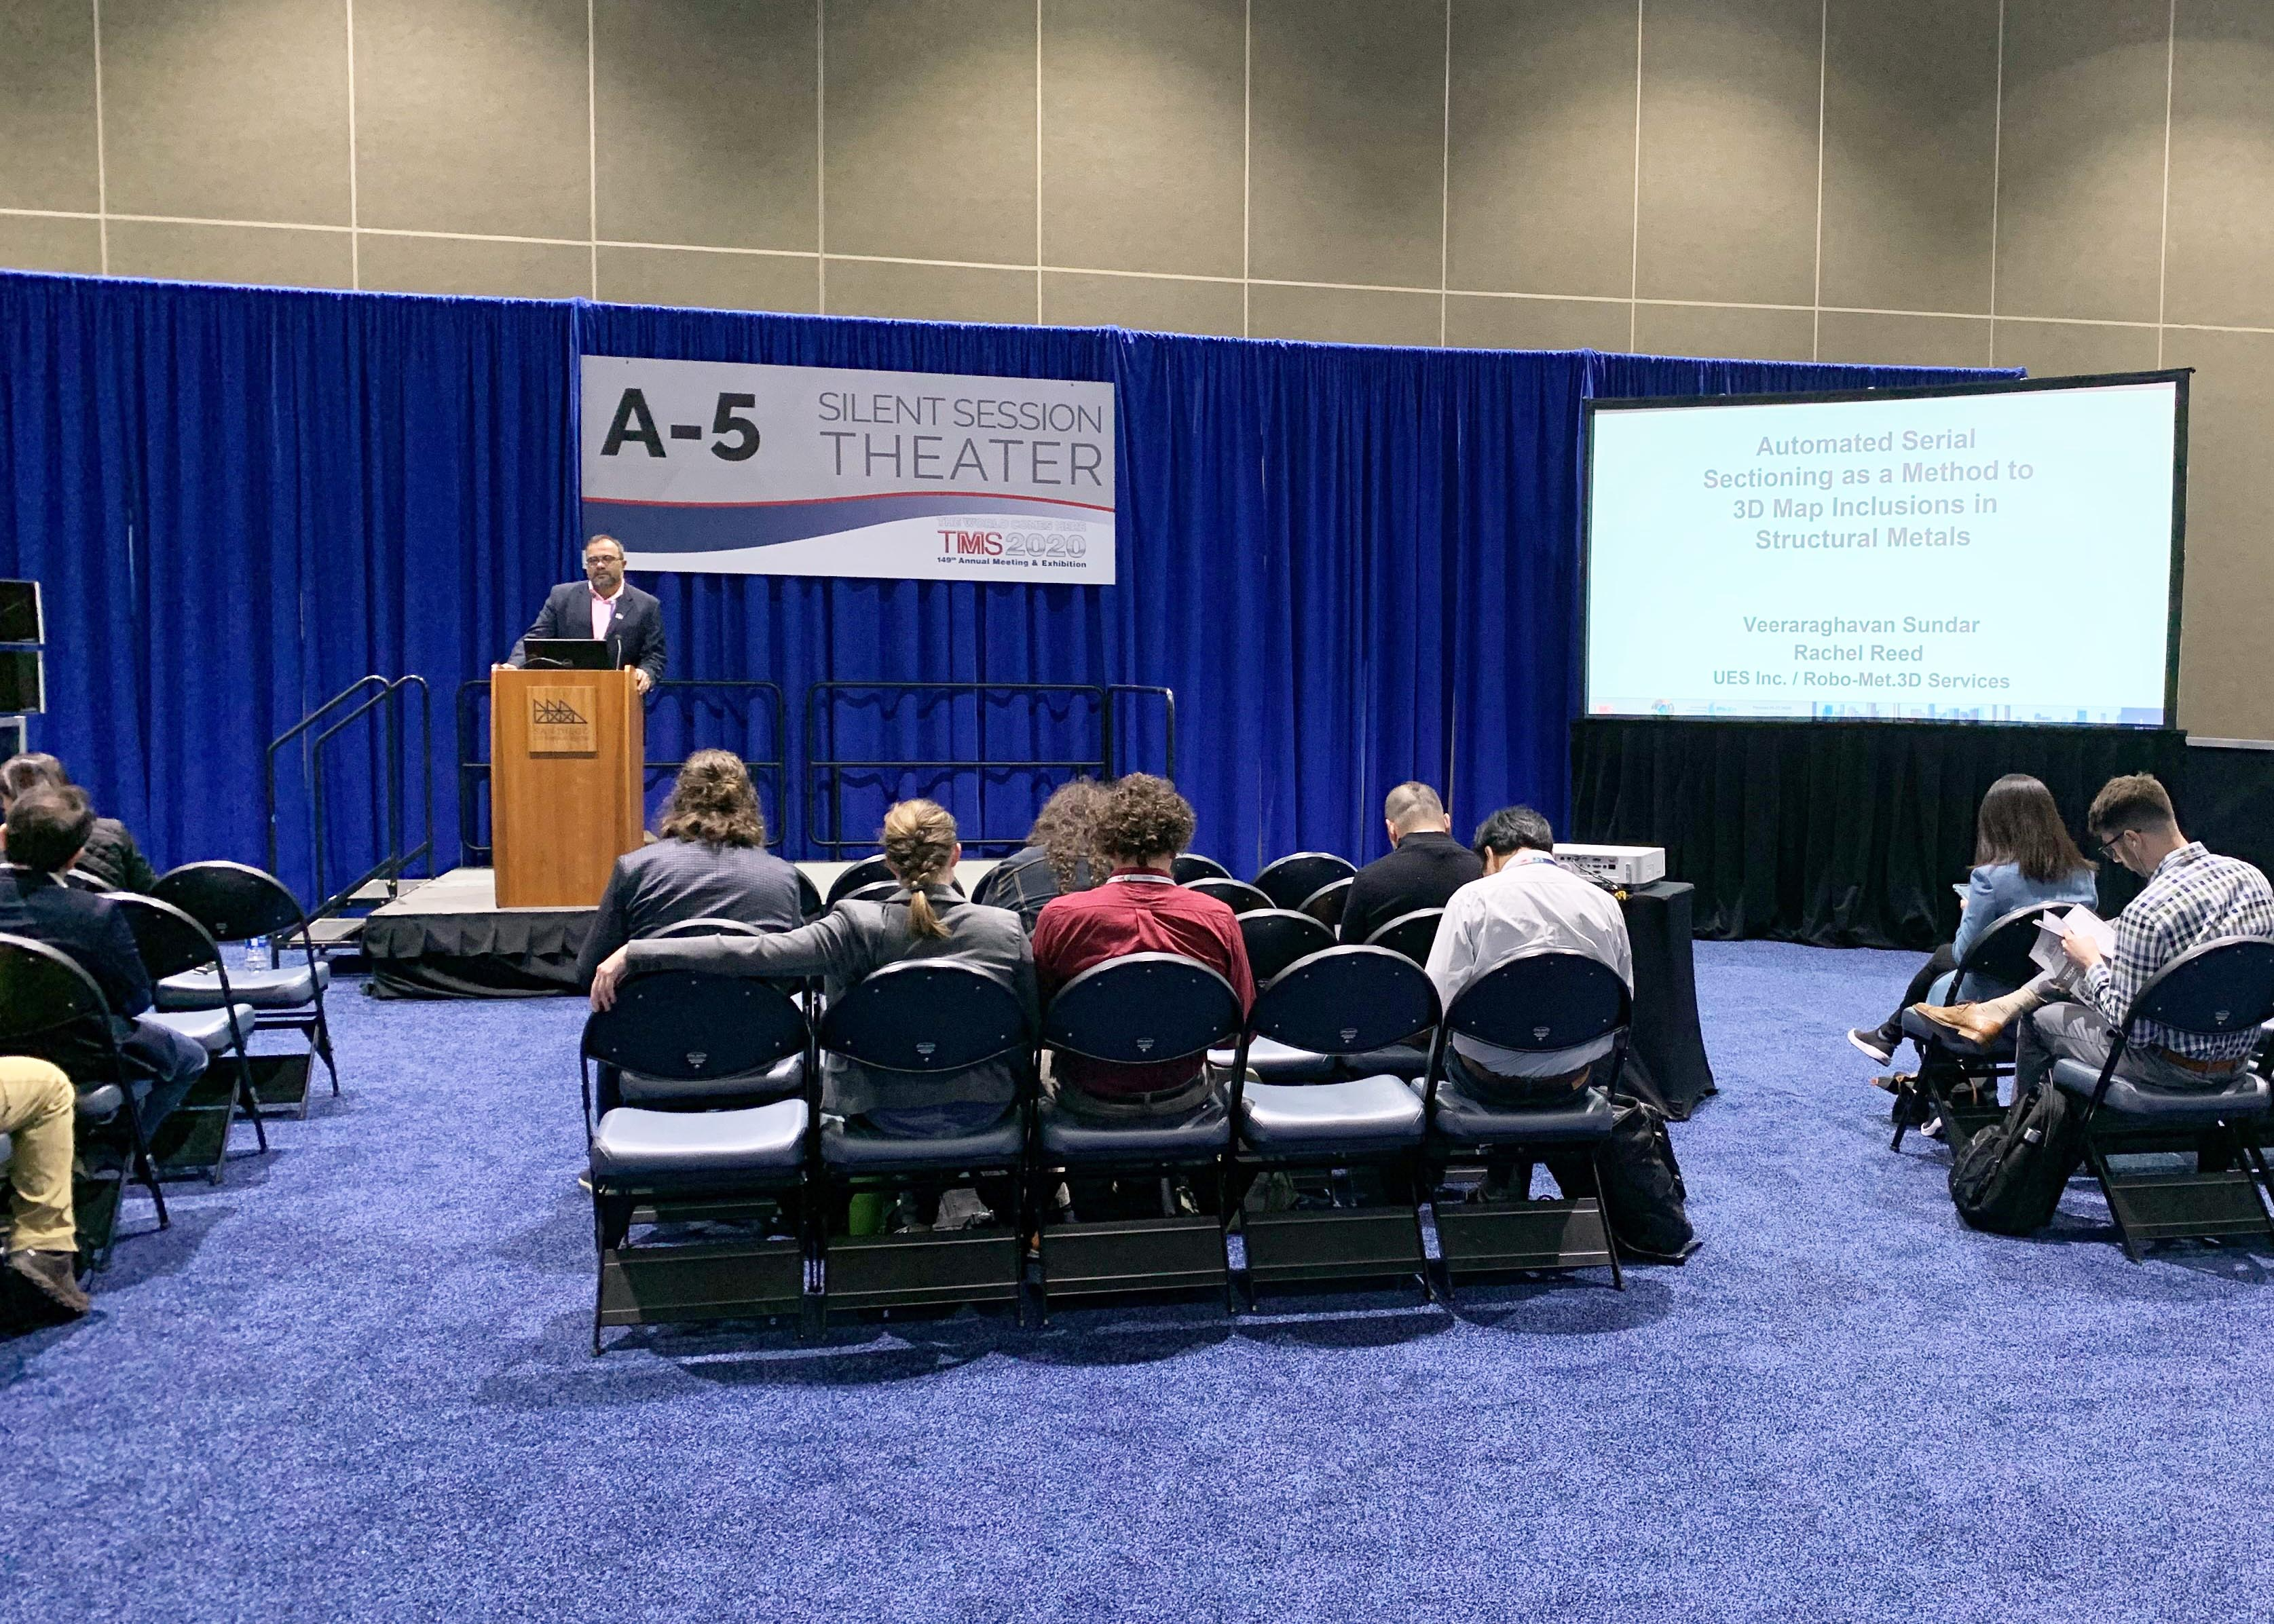 Dr. Sundar presents on Automated Serial Sectioning as a Method to 3D Map Inclusions in Structural Metalsat TMS 2020